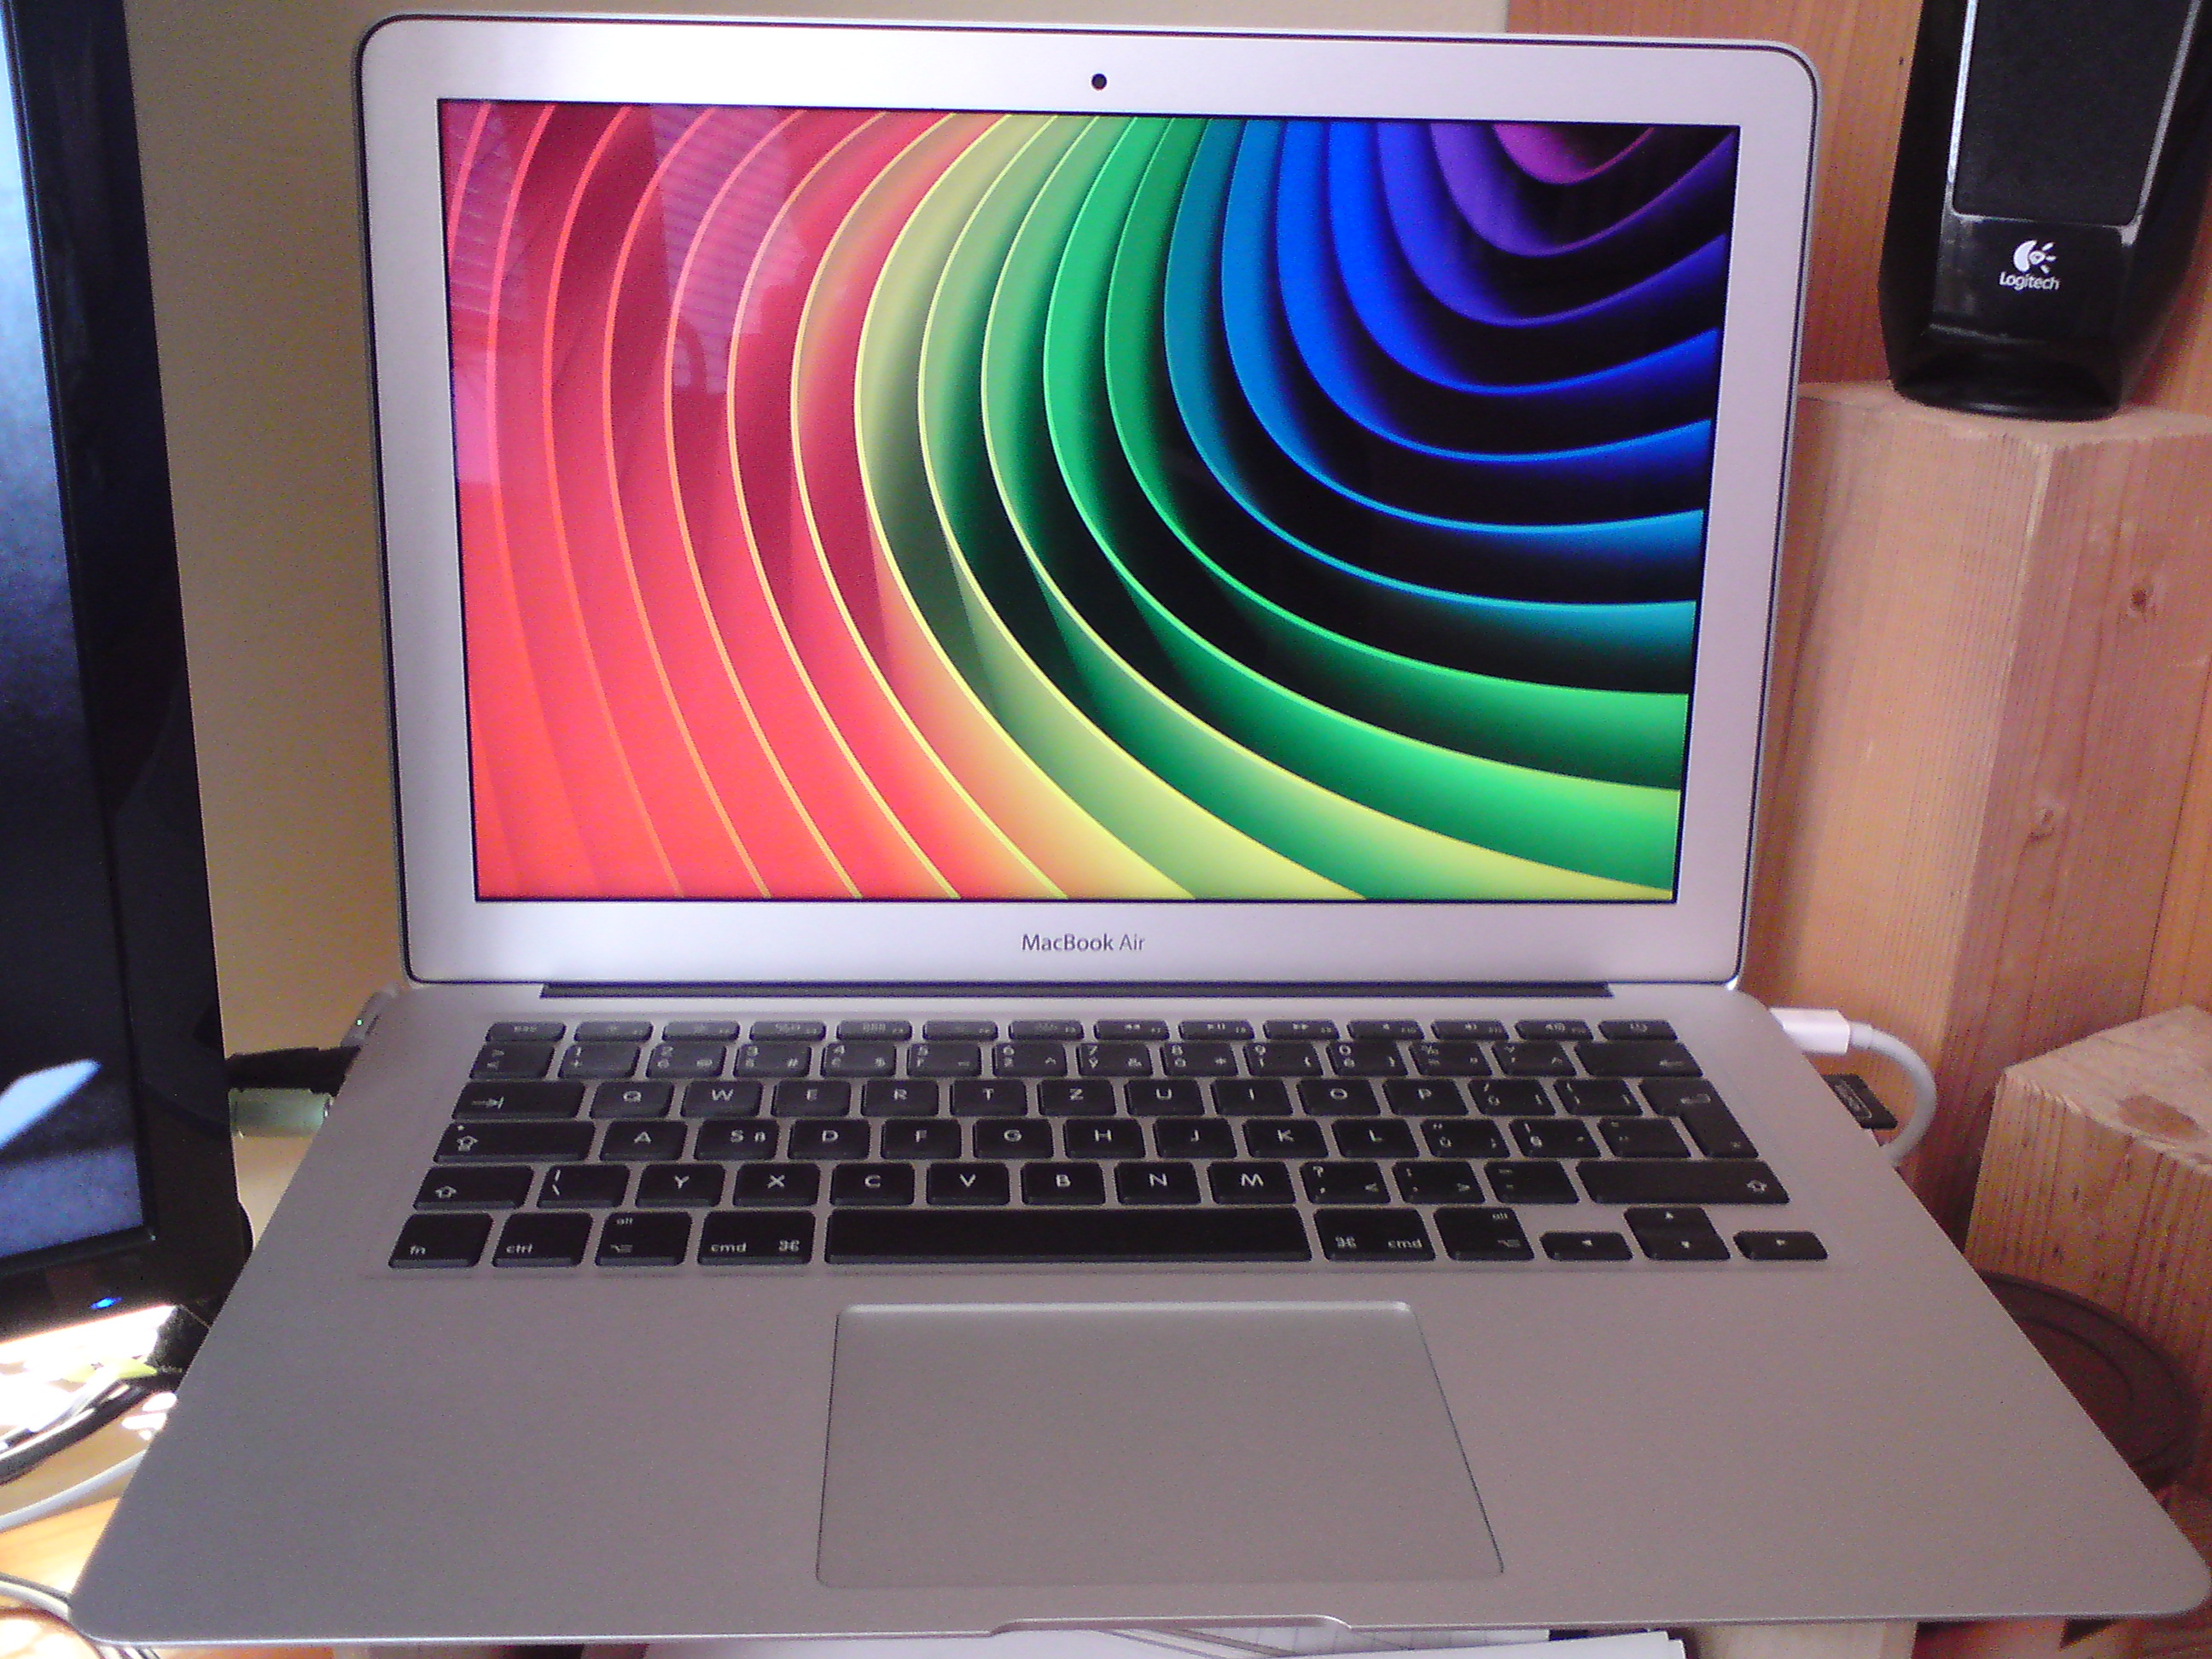 MacBook Air_obrazovka2